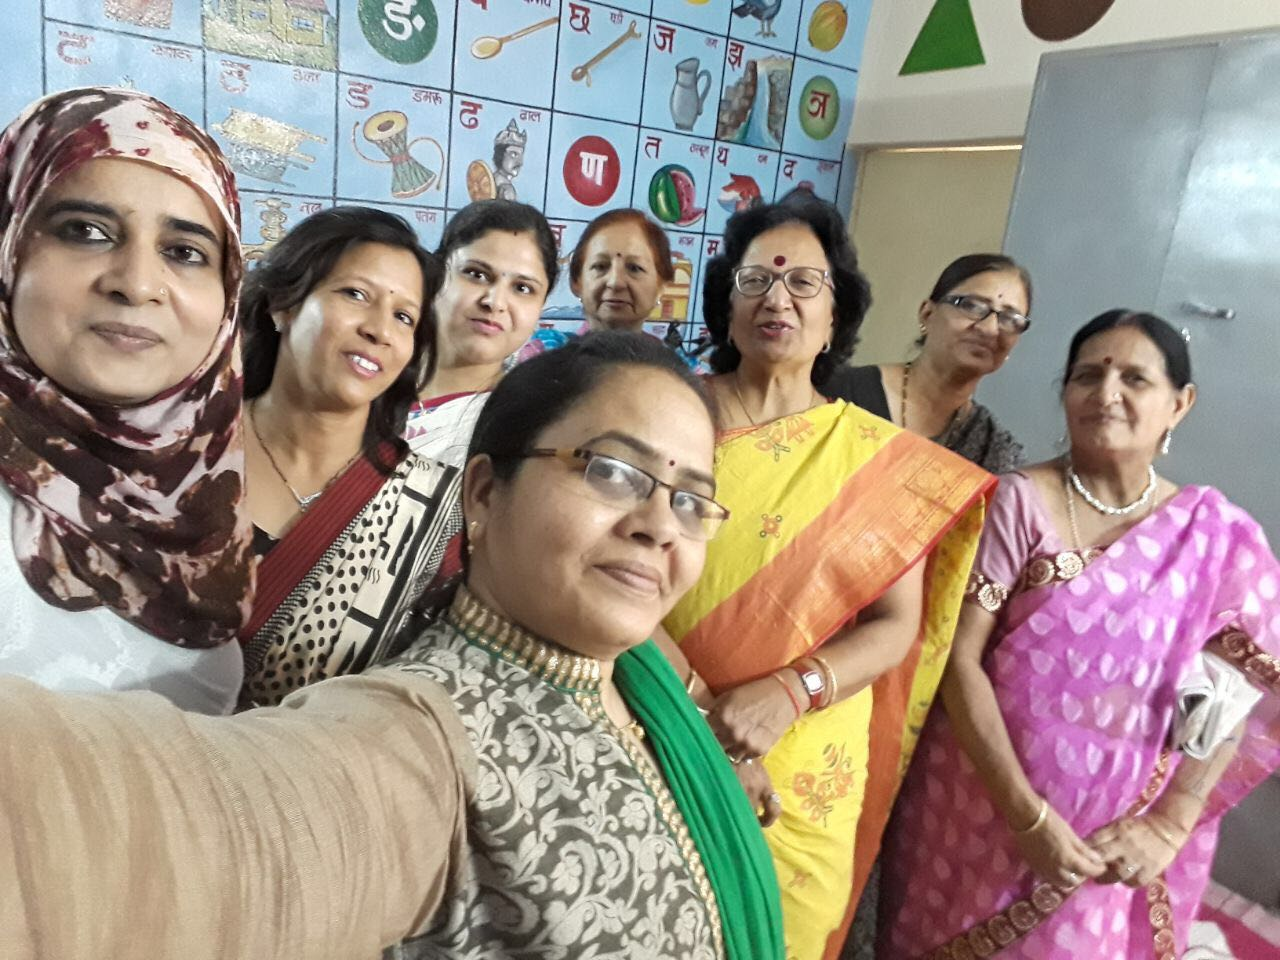 TCWG did lokarpan of nursary in government school no 124 adopted by us dr Preti Agrawal was chief guest members present were prerna Shintre firdose Nahid purnima raut chanda sharma sandhya Panchayti Farida Kaul.